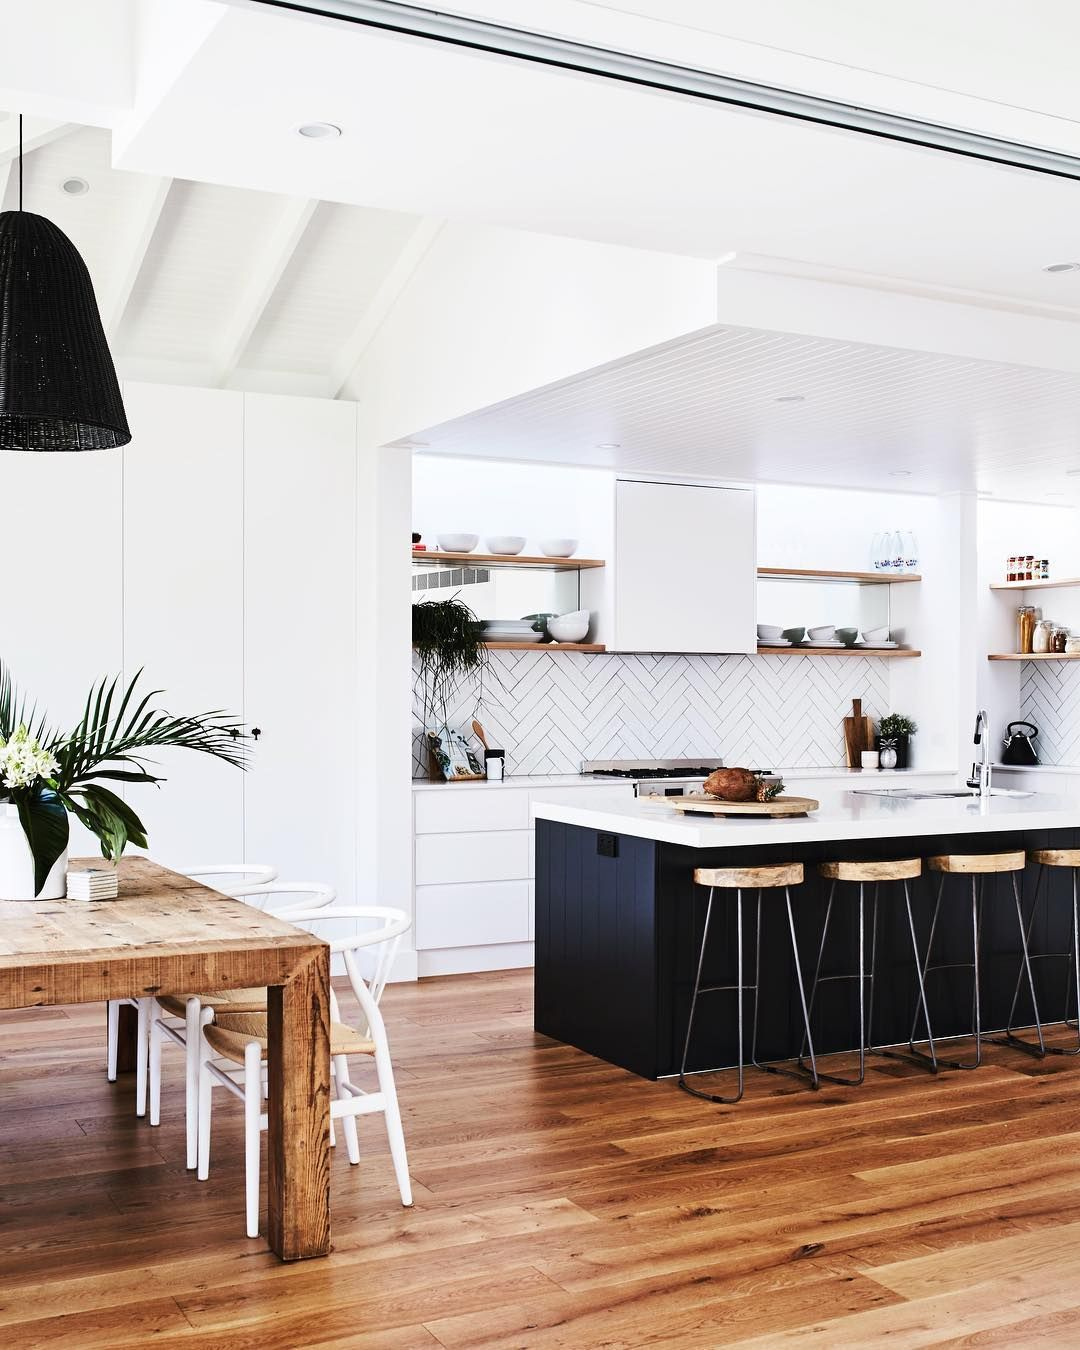 Kitchen goals right here our latest citizensofstyle home belonging to the very talented bamconstructionsgroup and soulofgerringong in  also farmhouse with soul design inspo house rh pinterest